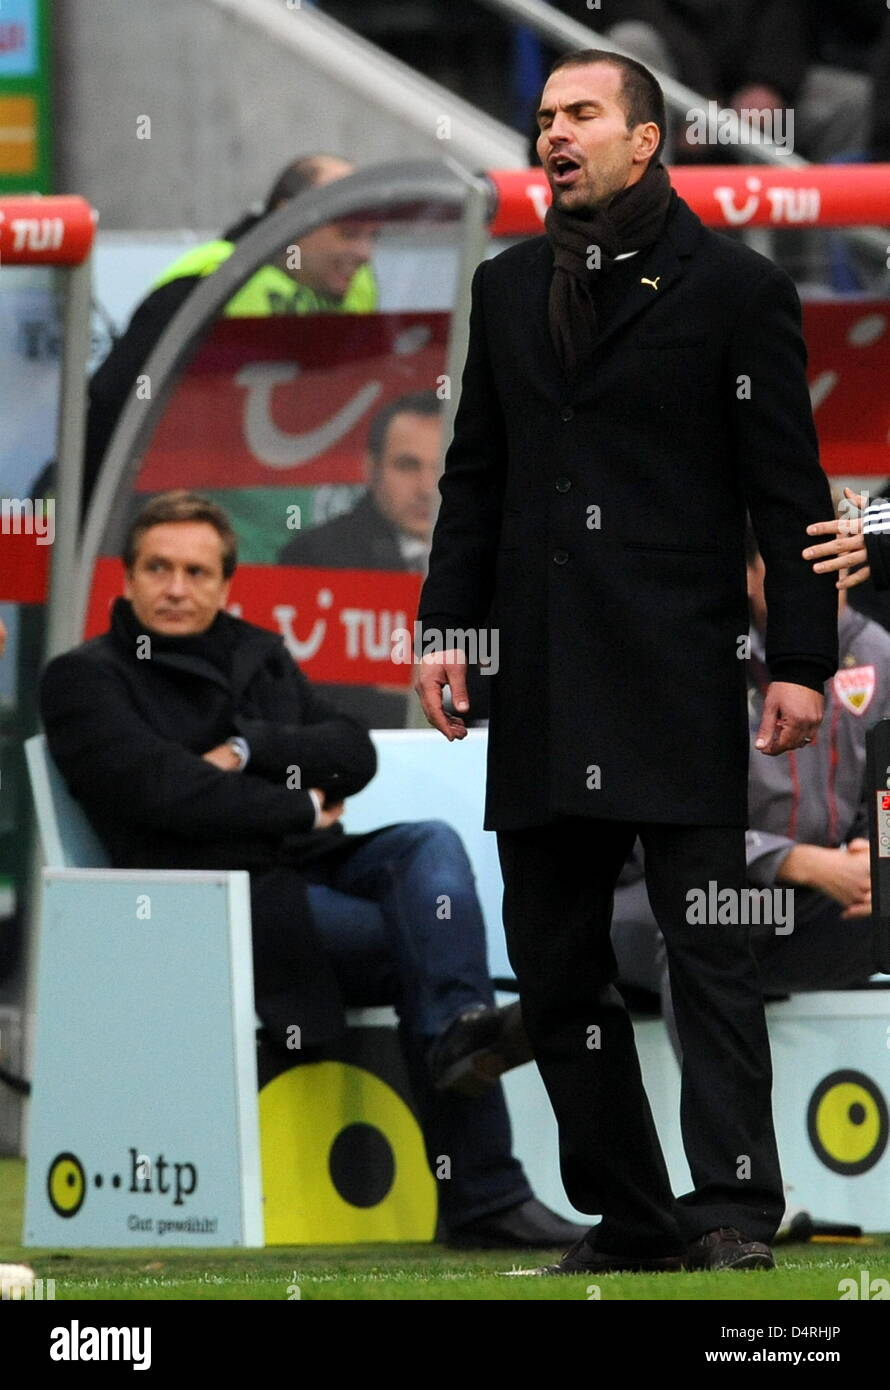 Stuttgart?s head coach Markus Babbel (R) gives instructions next to manager Horst Heldt during the German Bundesliga Stock Photo